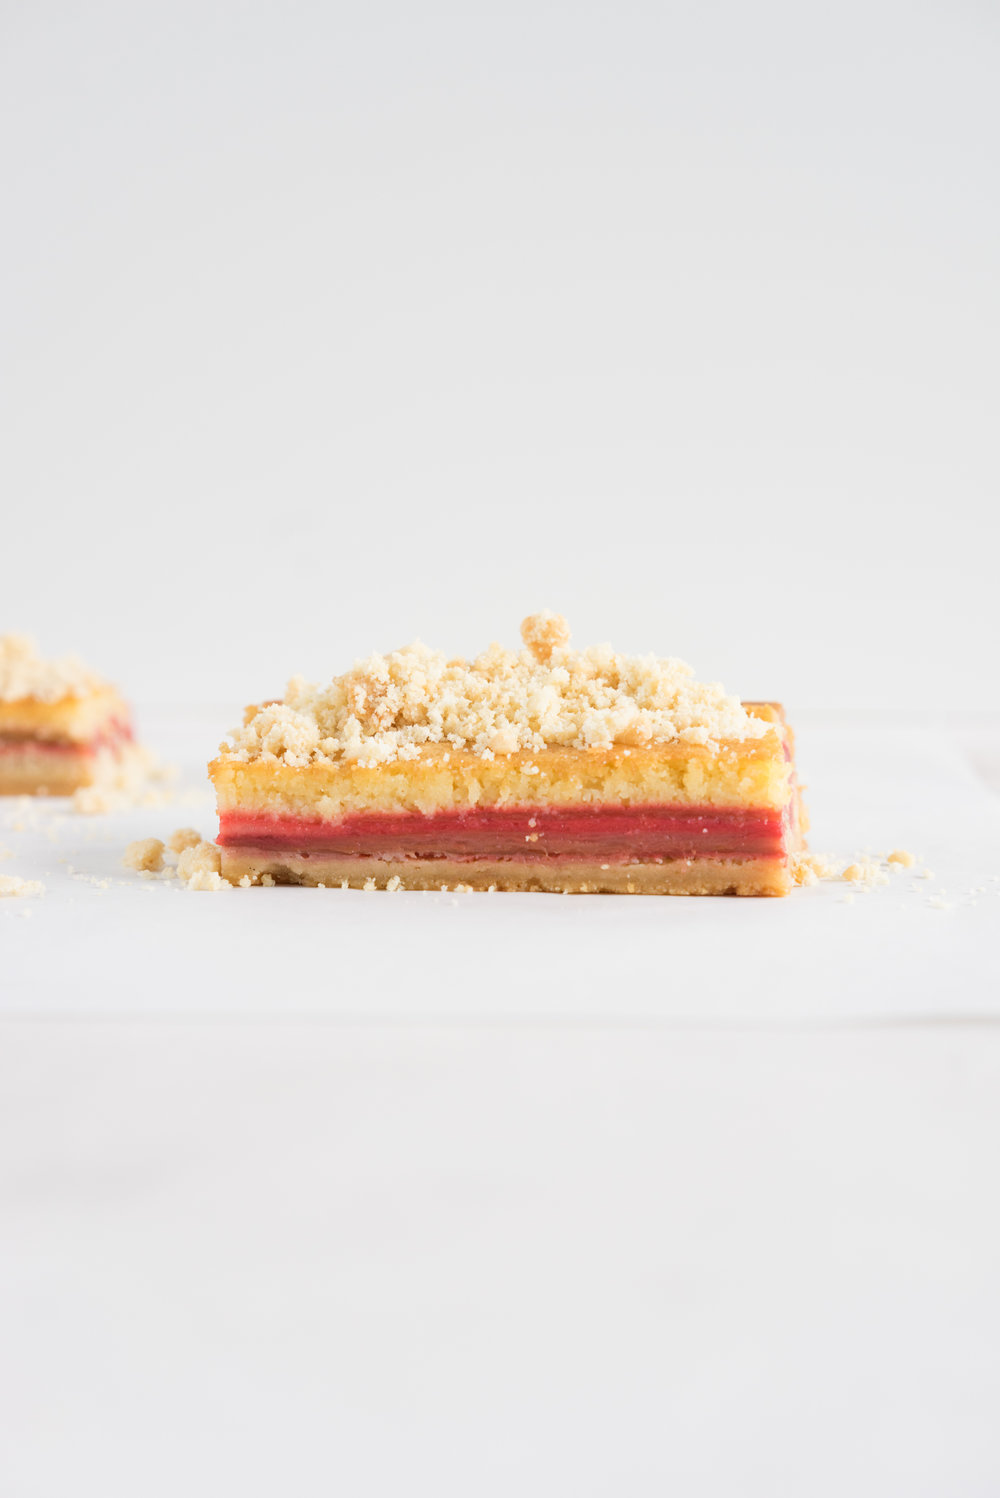 Brown butter rhubarb streusel tart - pate sucree, brown butter frangipane, cured rhubarb, and toasted almond streusel. Worth every second